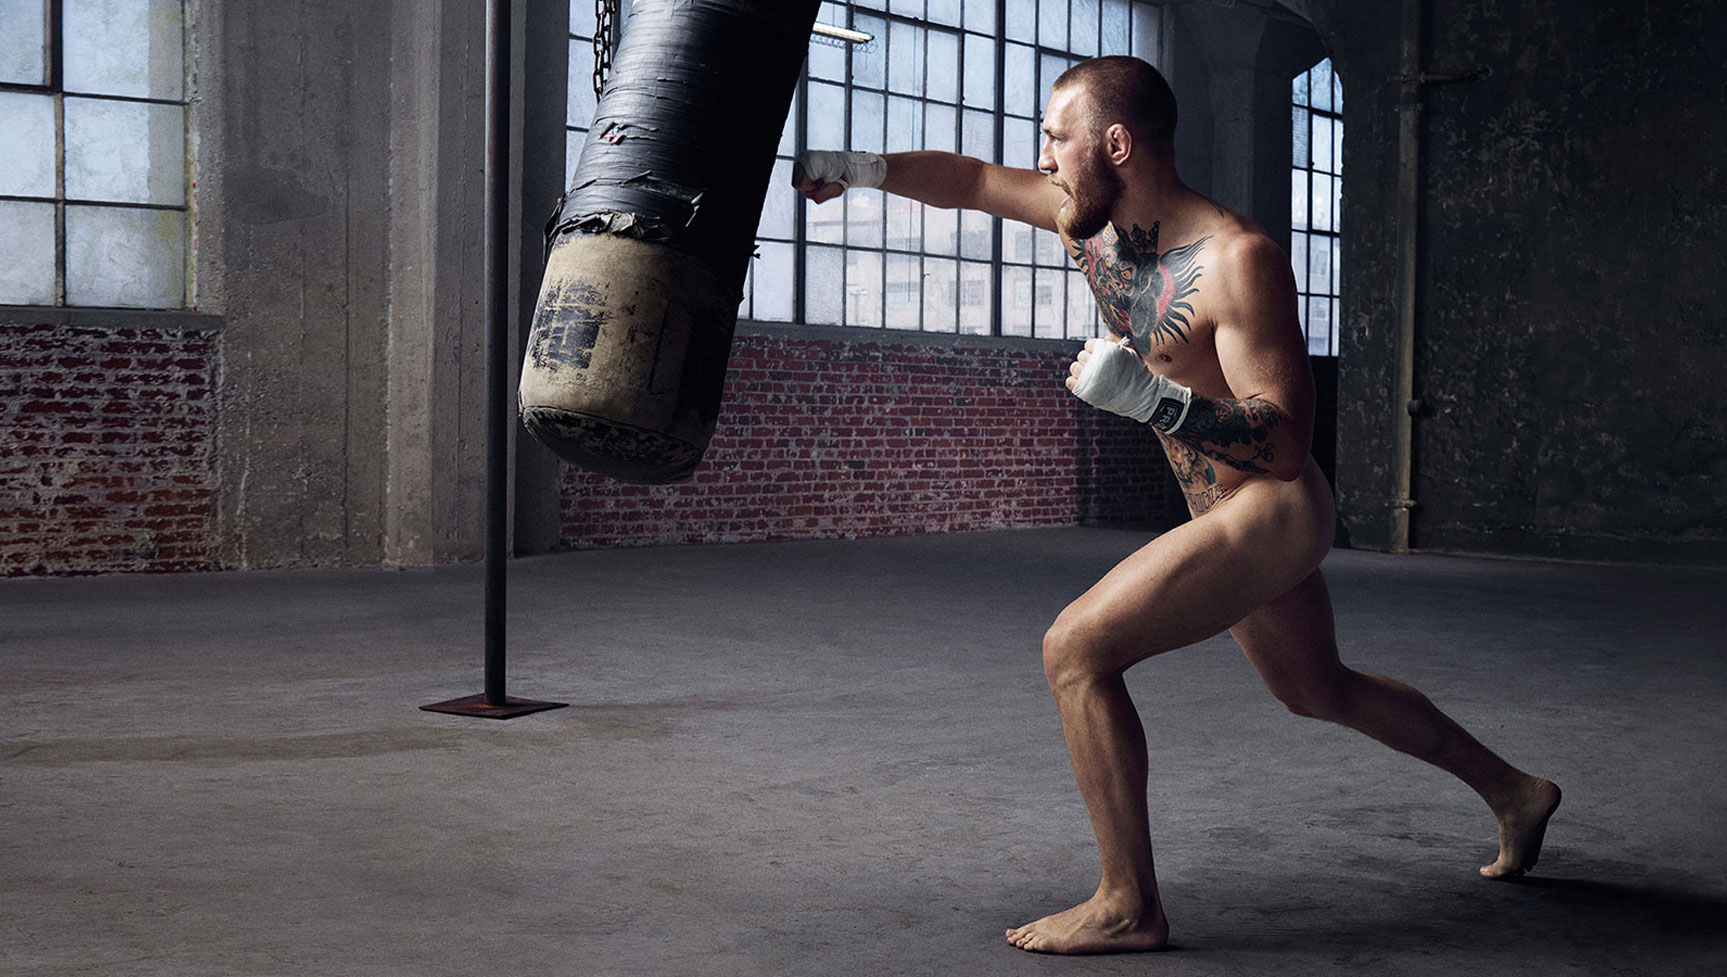 ESPN Magazine The Body Issue 2016 - Conor McGregor / Конор Макгрегор - Культ тела журнала ESPN